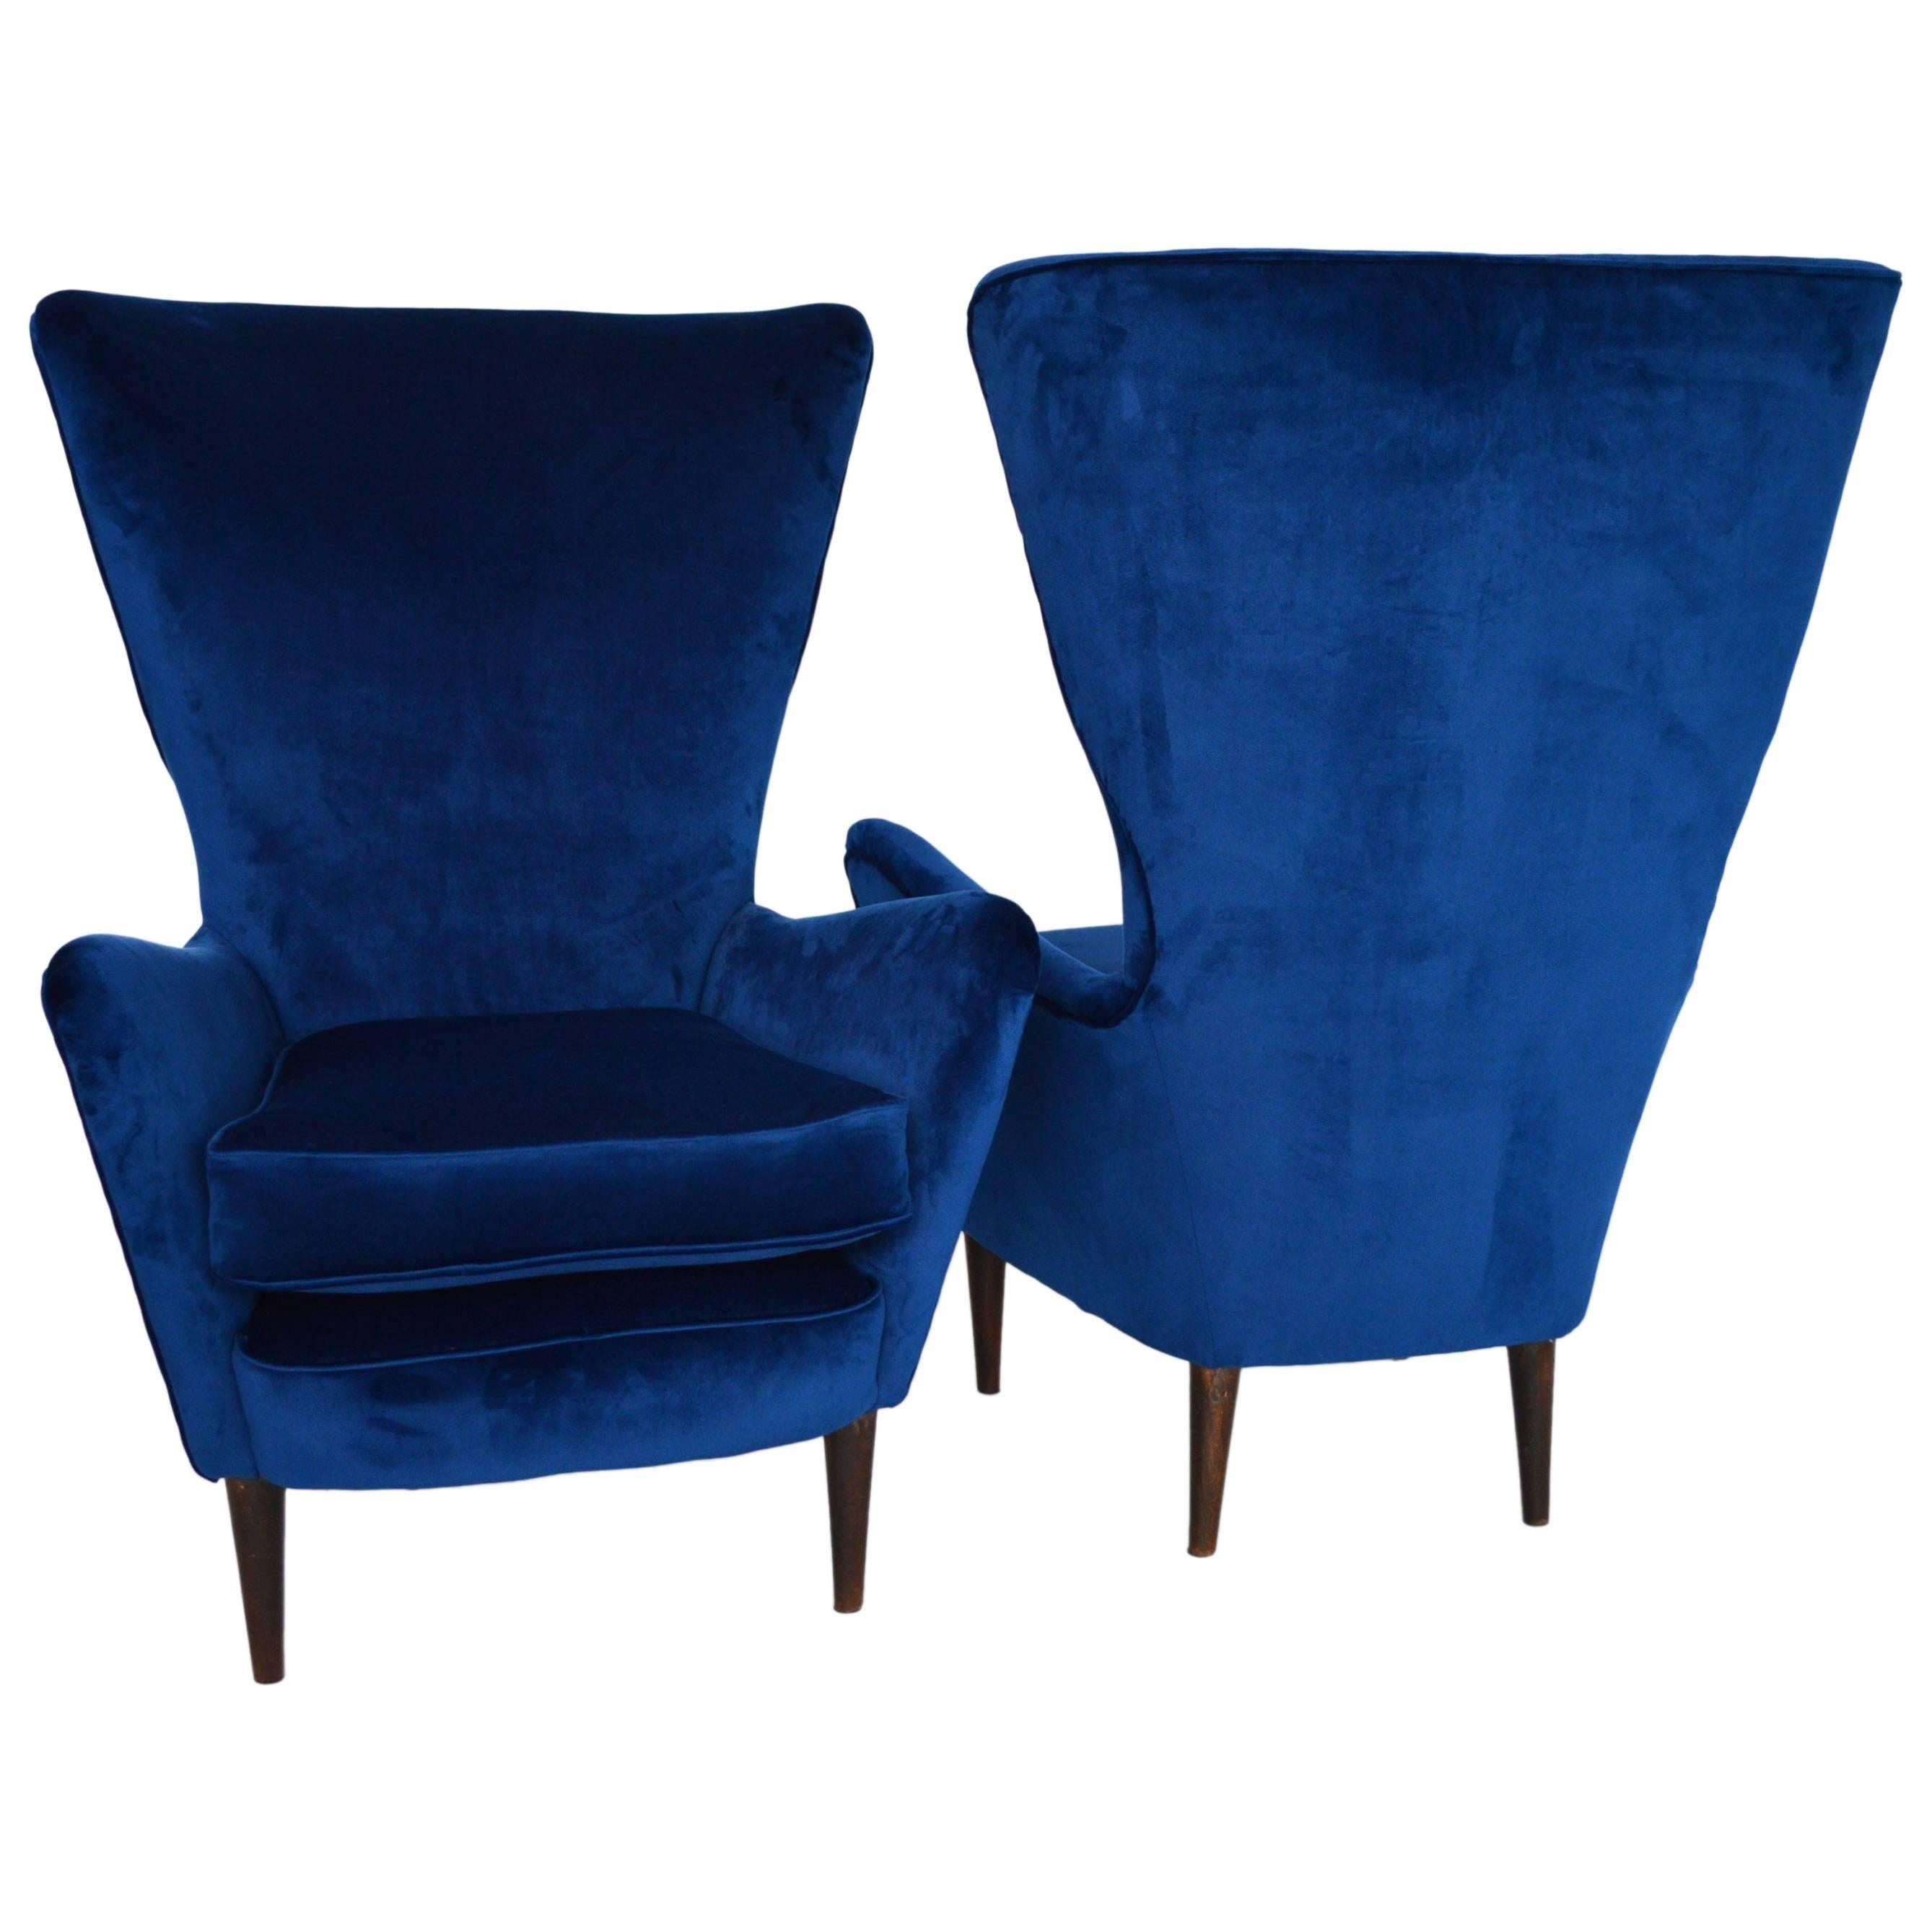 Italian Lounge Chairs Restored With Royal Blue Velvet, 1950s For Sale